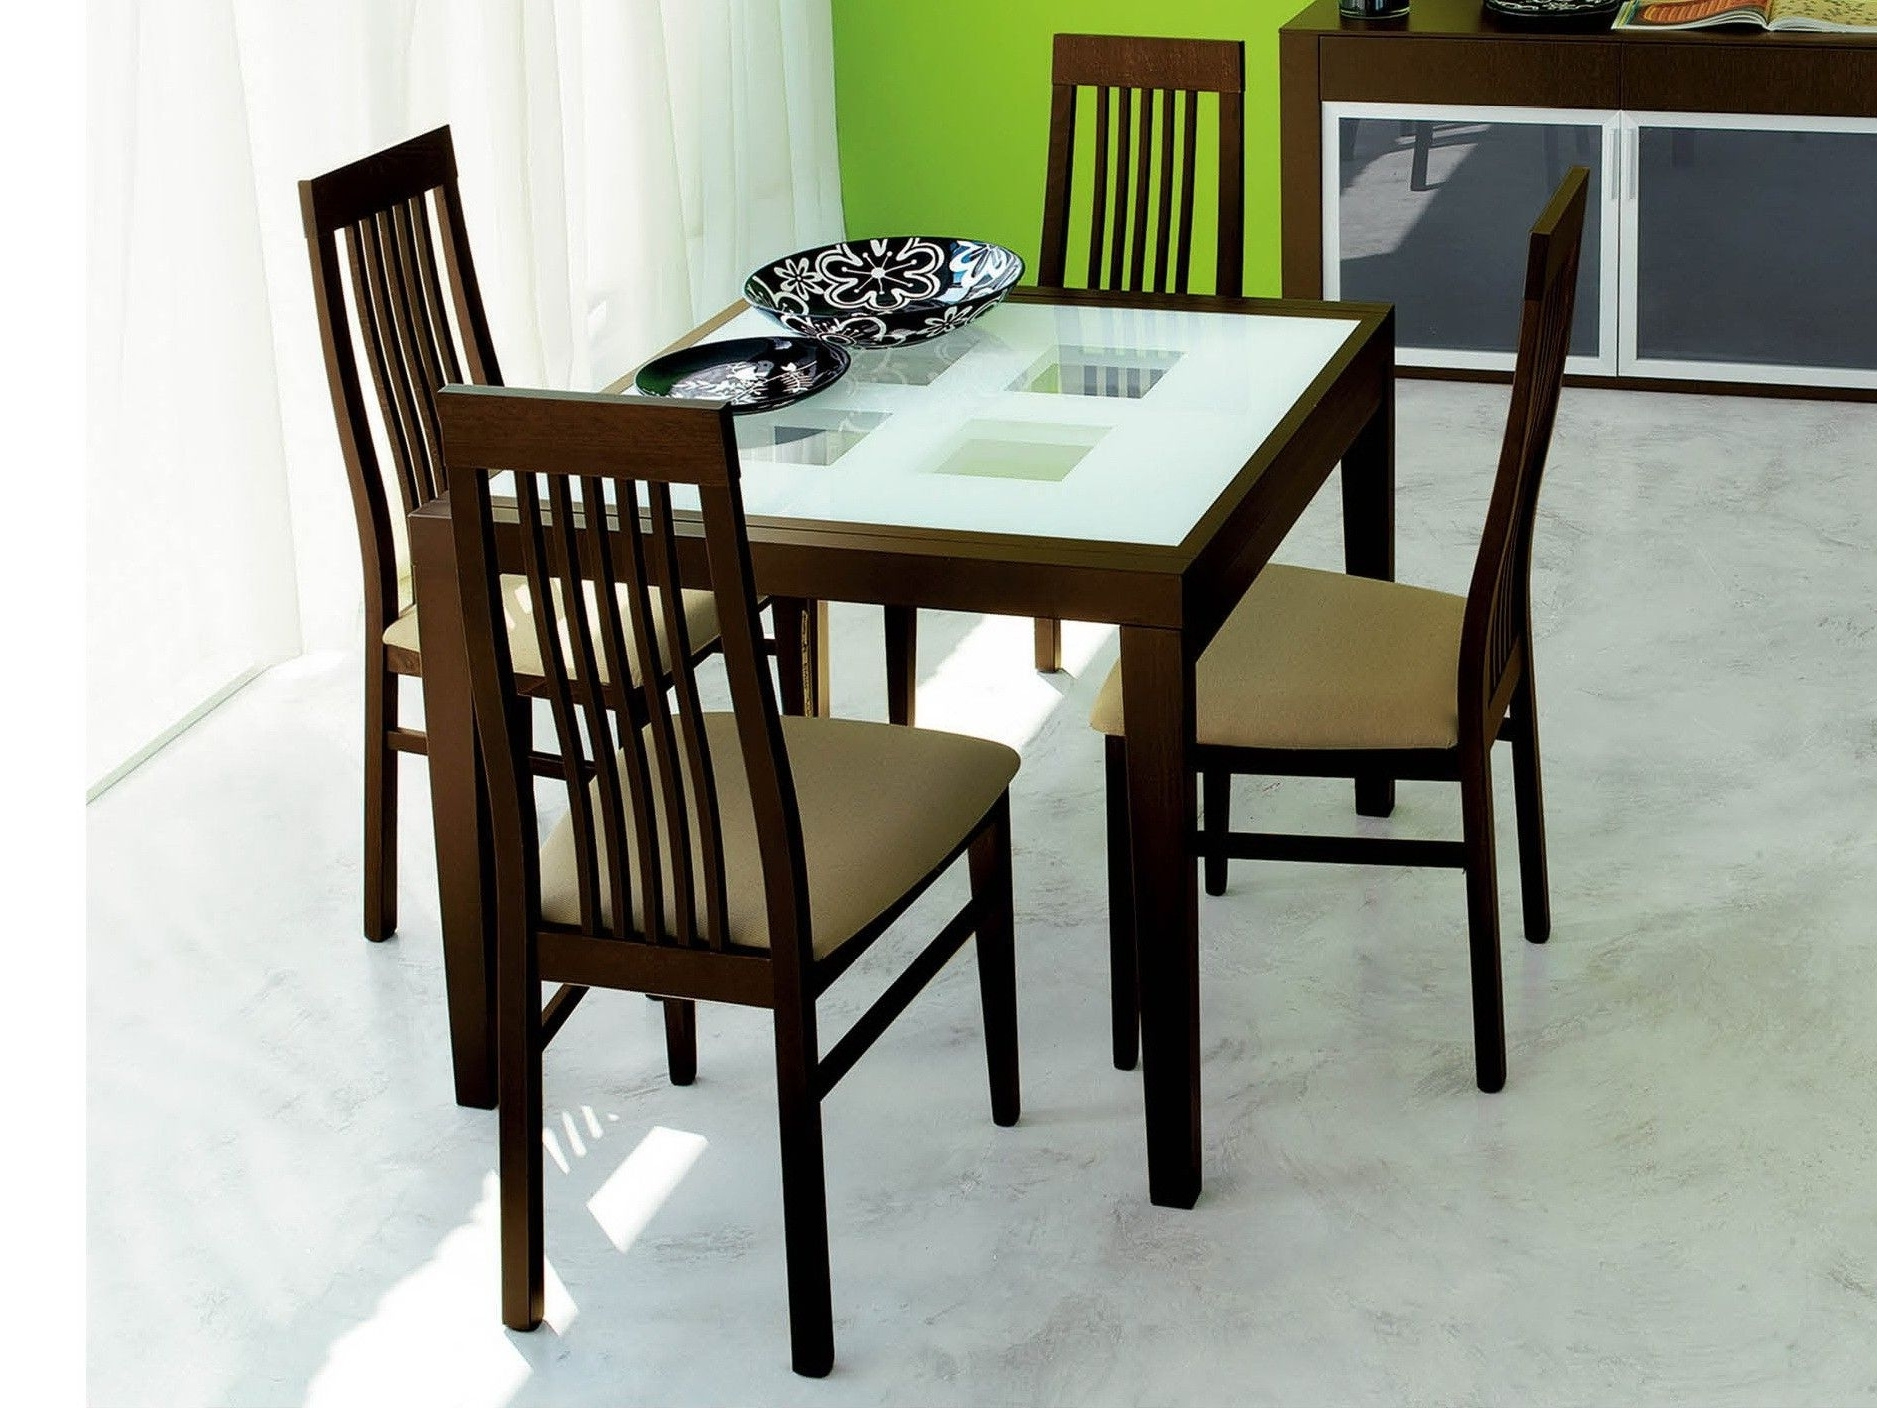 Domitalia Poker Frosted Glass Dining Room - Modern Dining Room Set for Well known Smoked Glass Dining Tables And Chairs